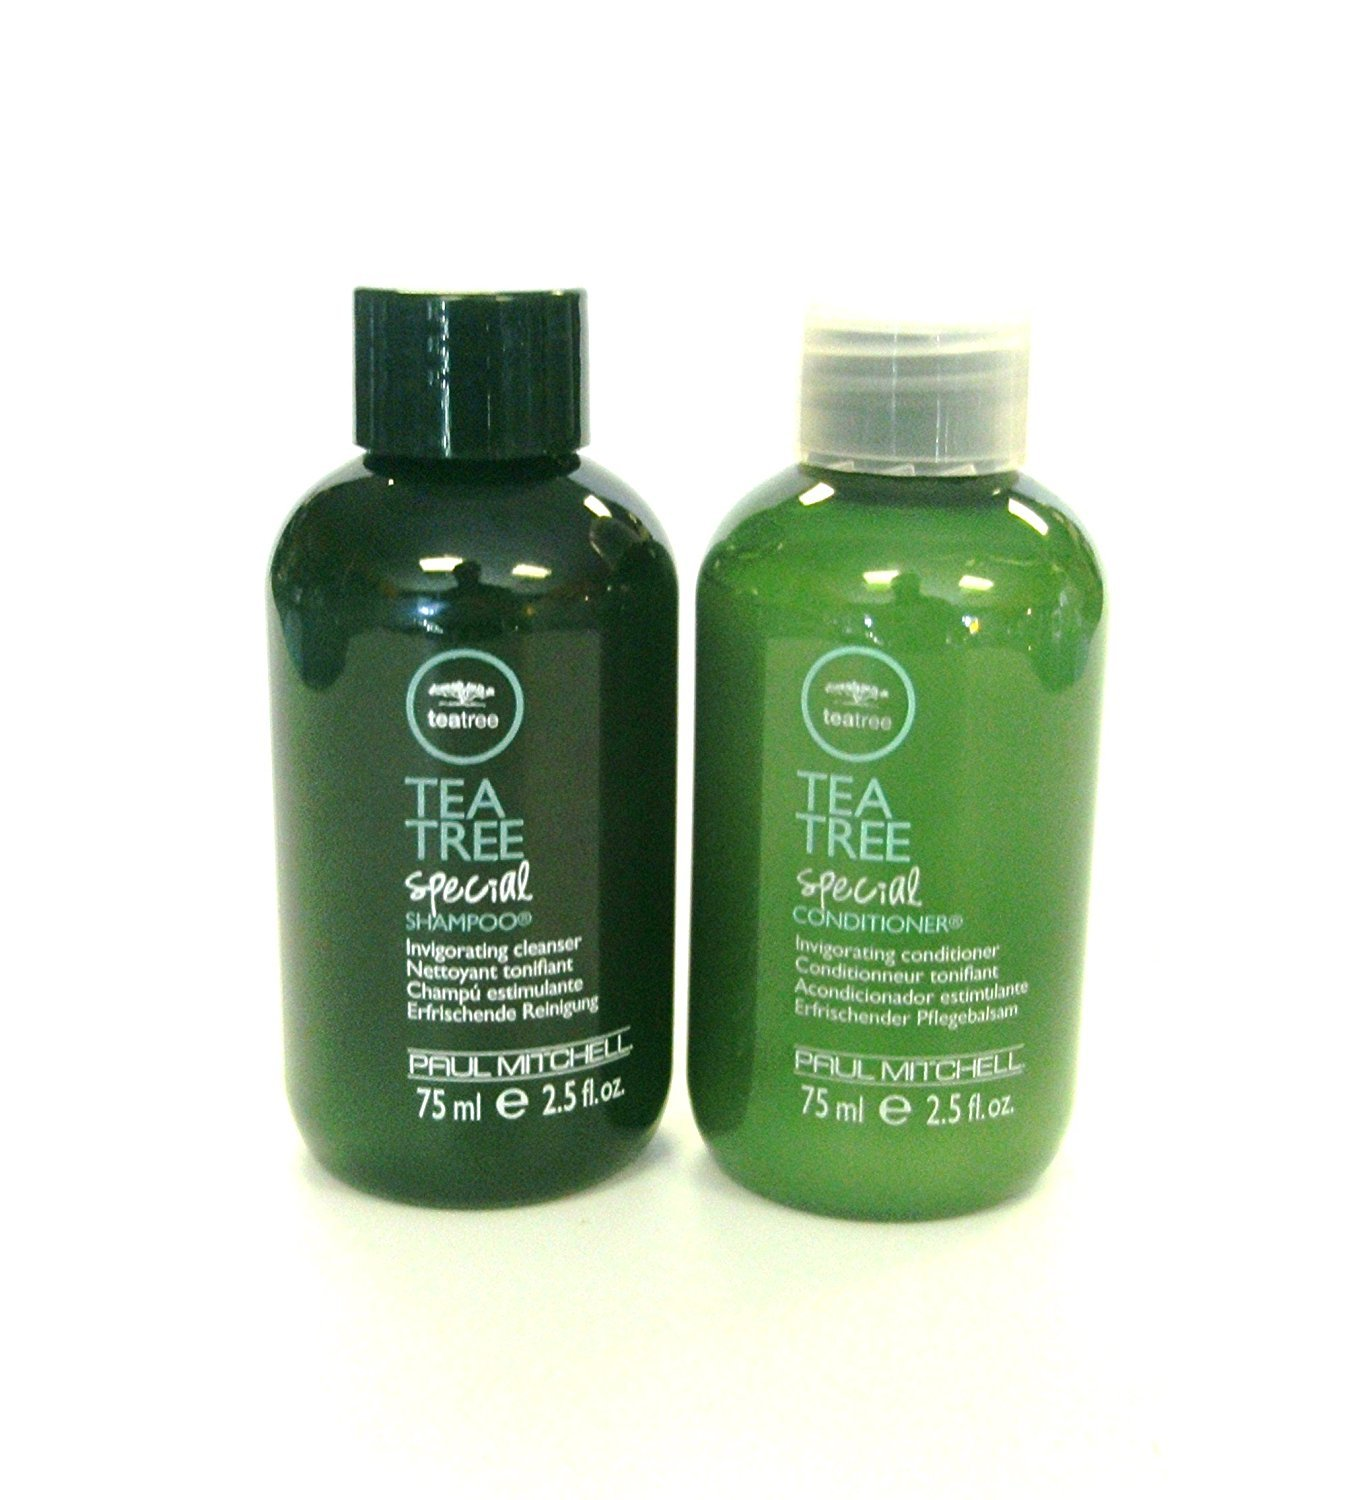 Paul Mitchell Tea Tree Special Shampoo & Conditioner Trail/Travel Size